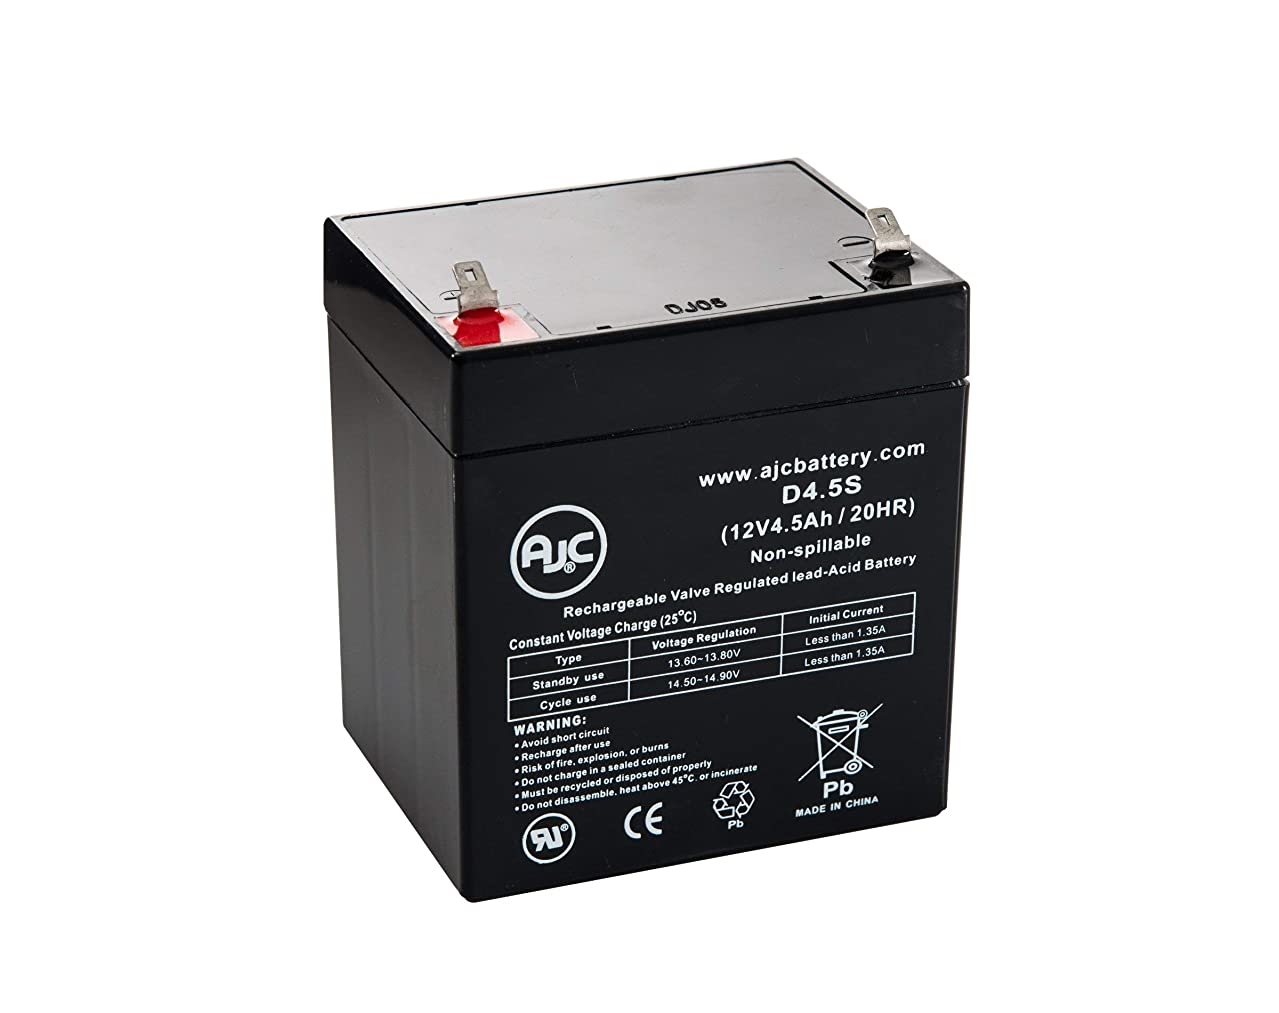 CPS425SL 12V 4.5Ah UPS Battery - This is an AJC Brand Replacement